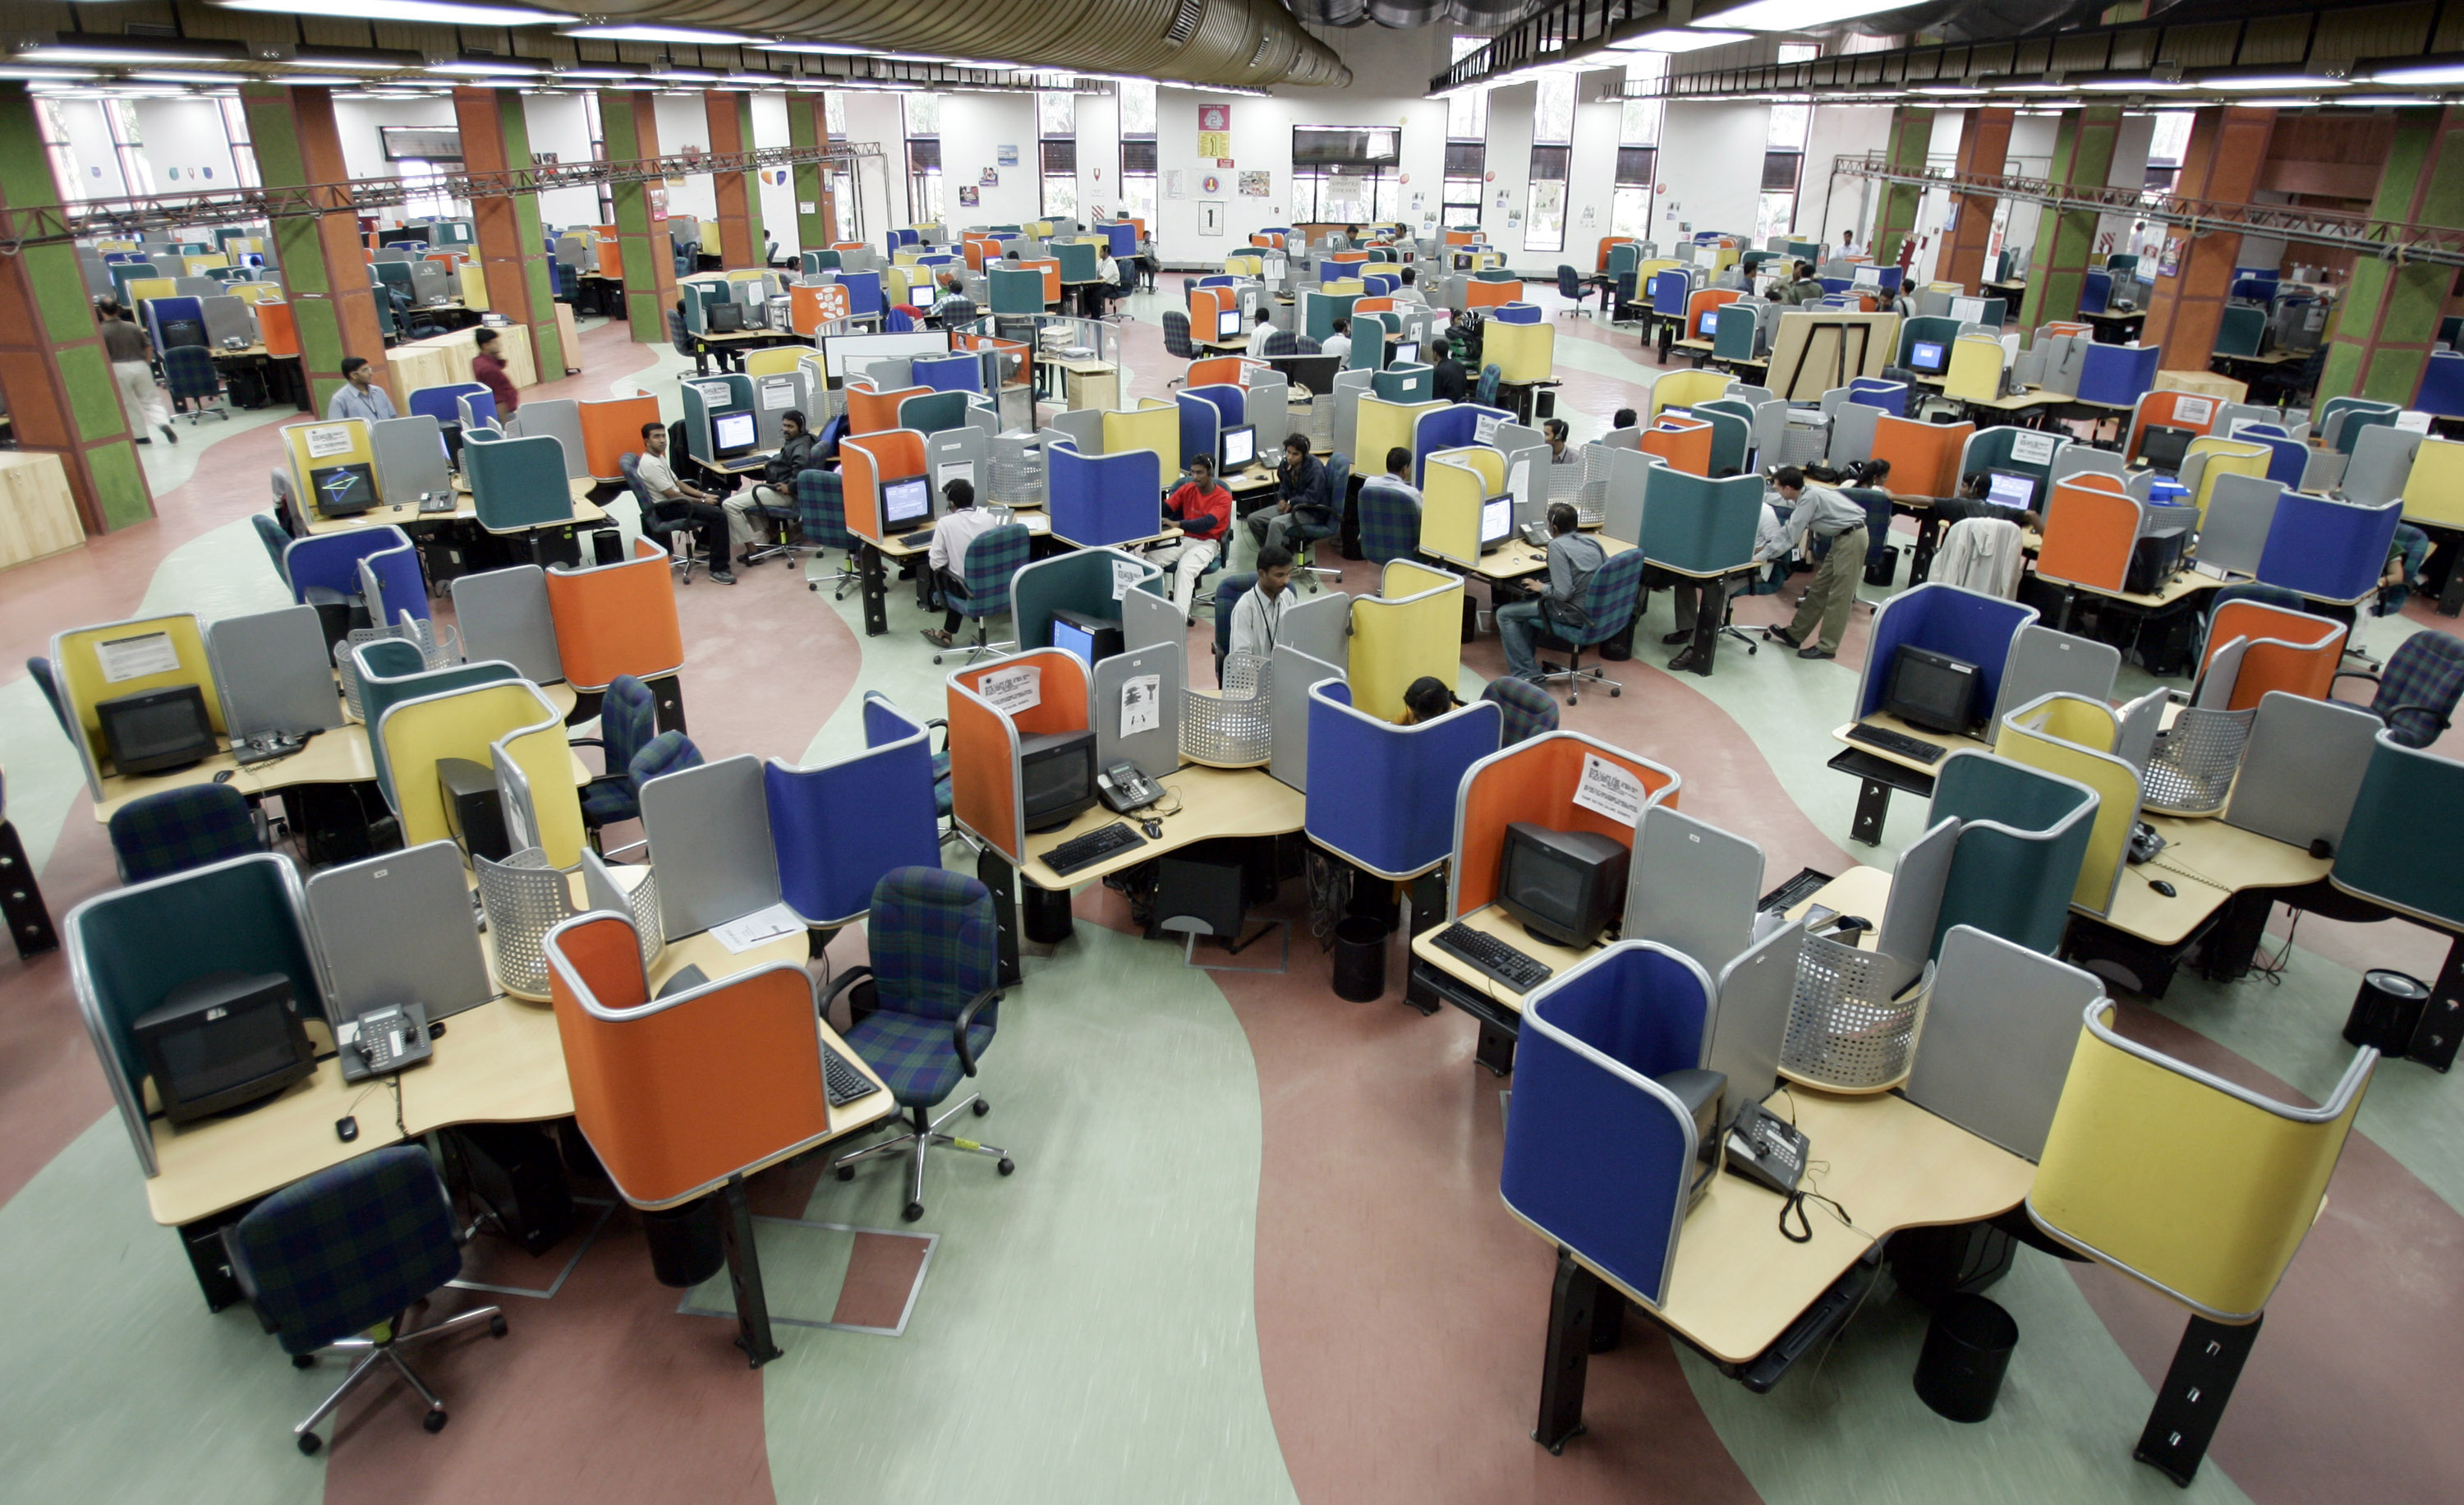 65 Arrested in Fake Call Center Ploy Used to Scam US Citizens